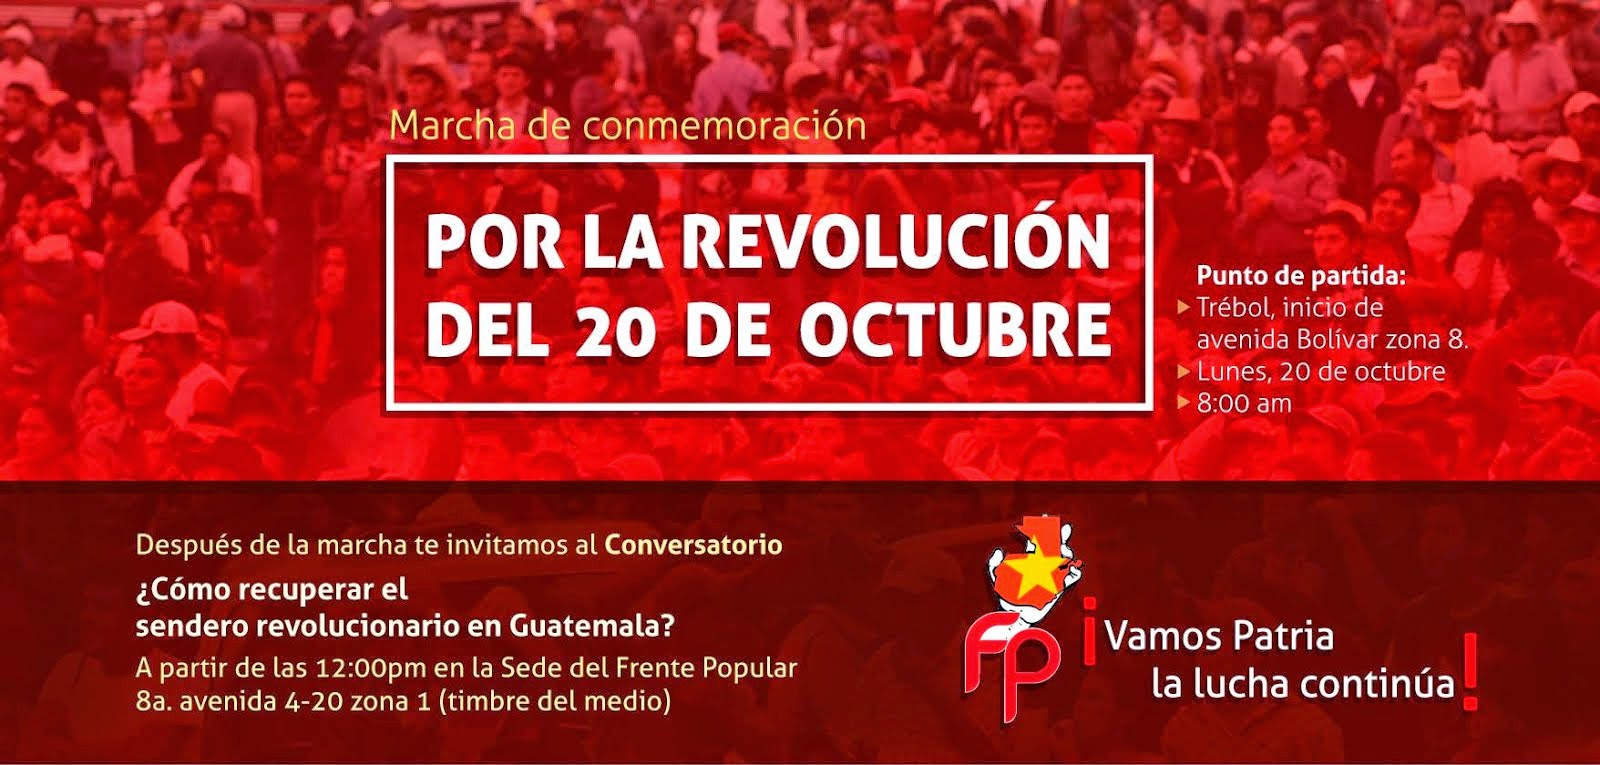 MARCHA DEL 20 DE OCTUBRE